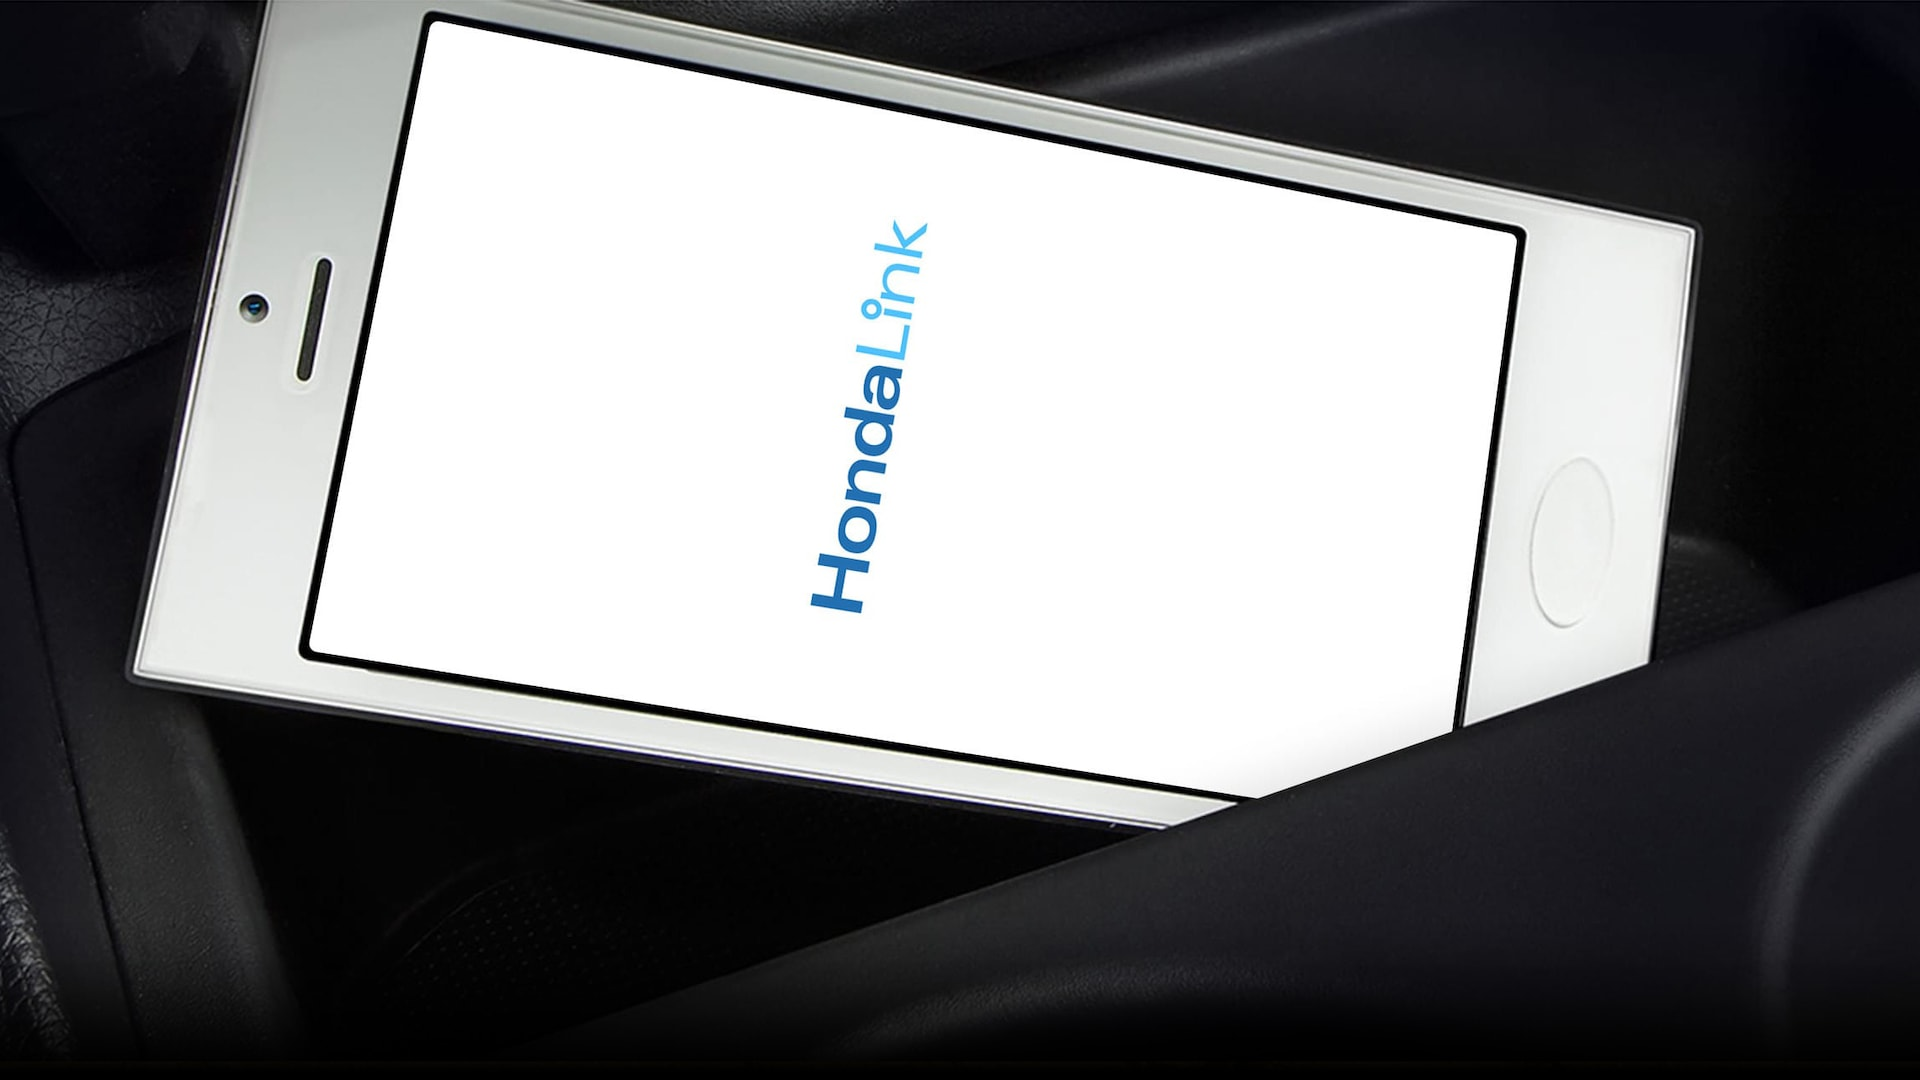 HondaLink® welcome screen detail on smartphone.